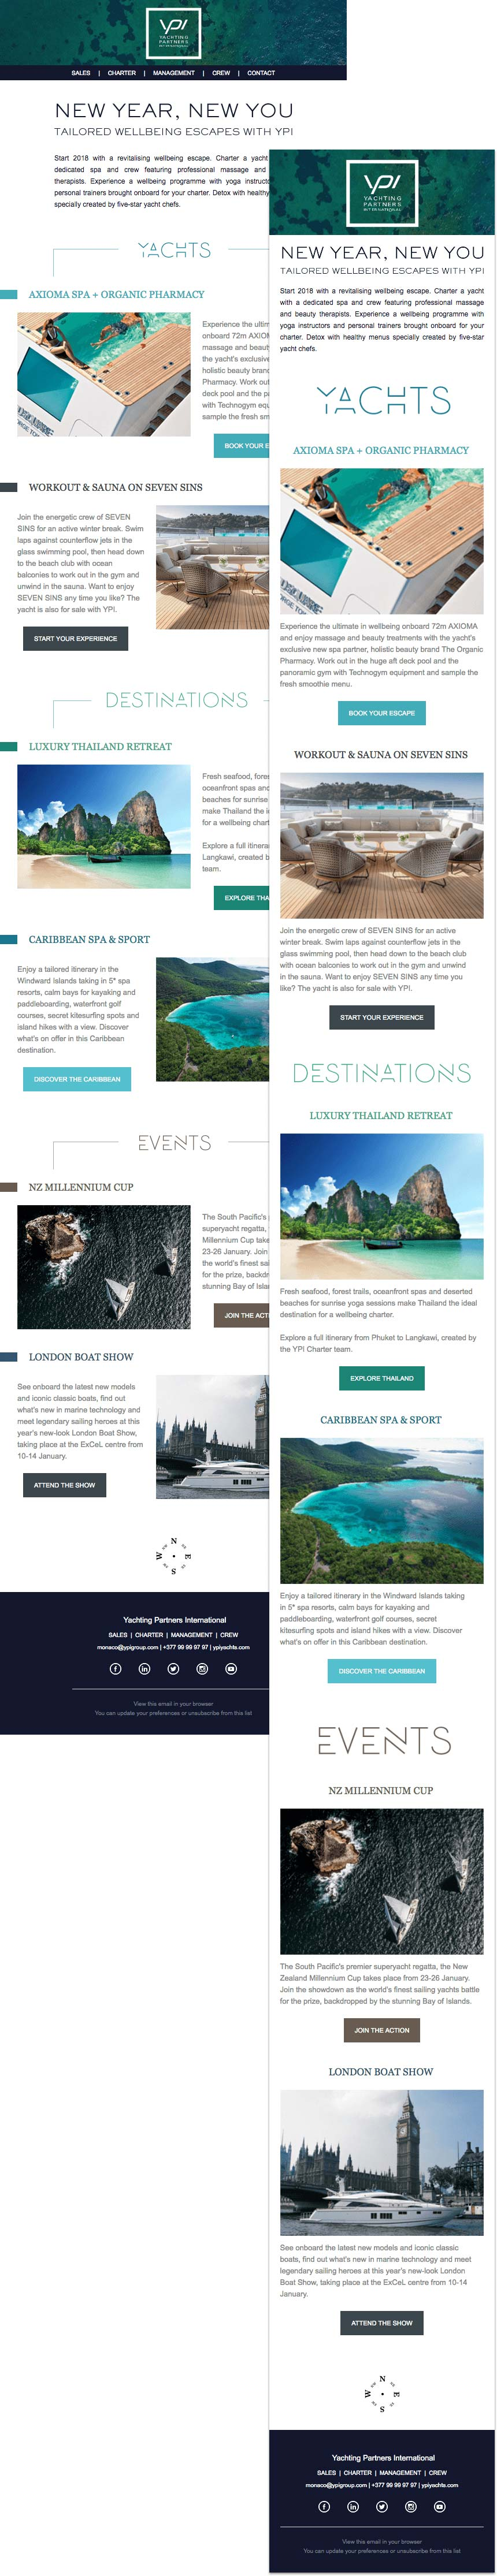 Image of Yachting Partners International newsletters.